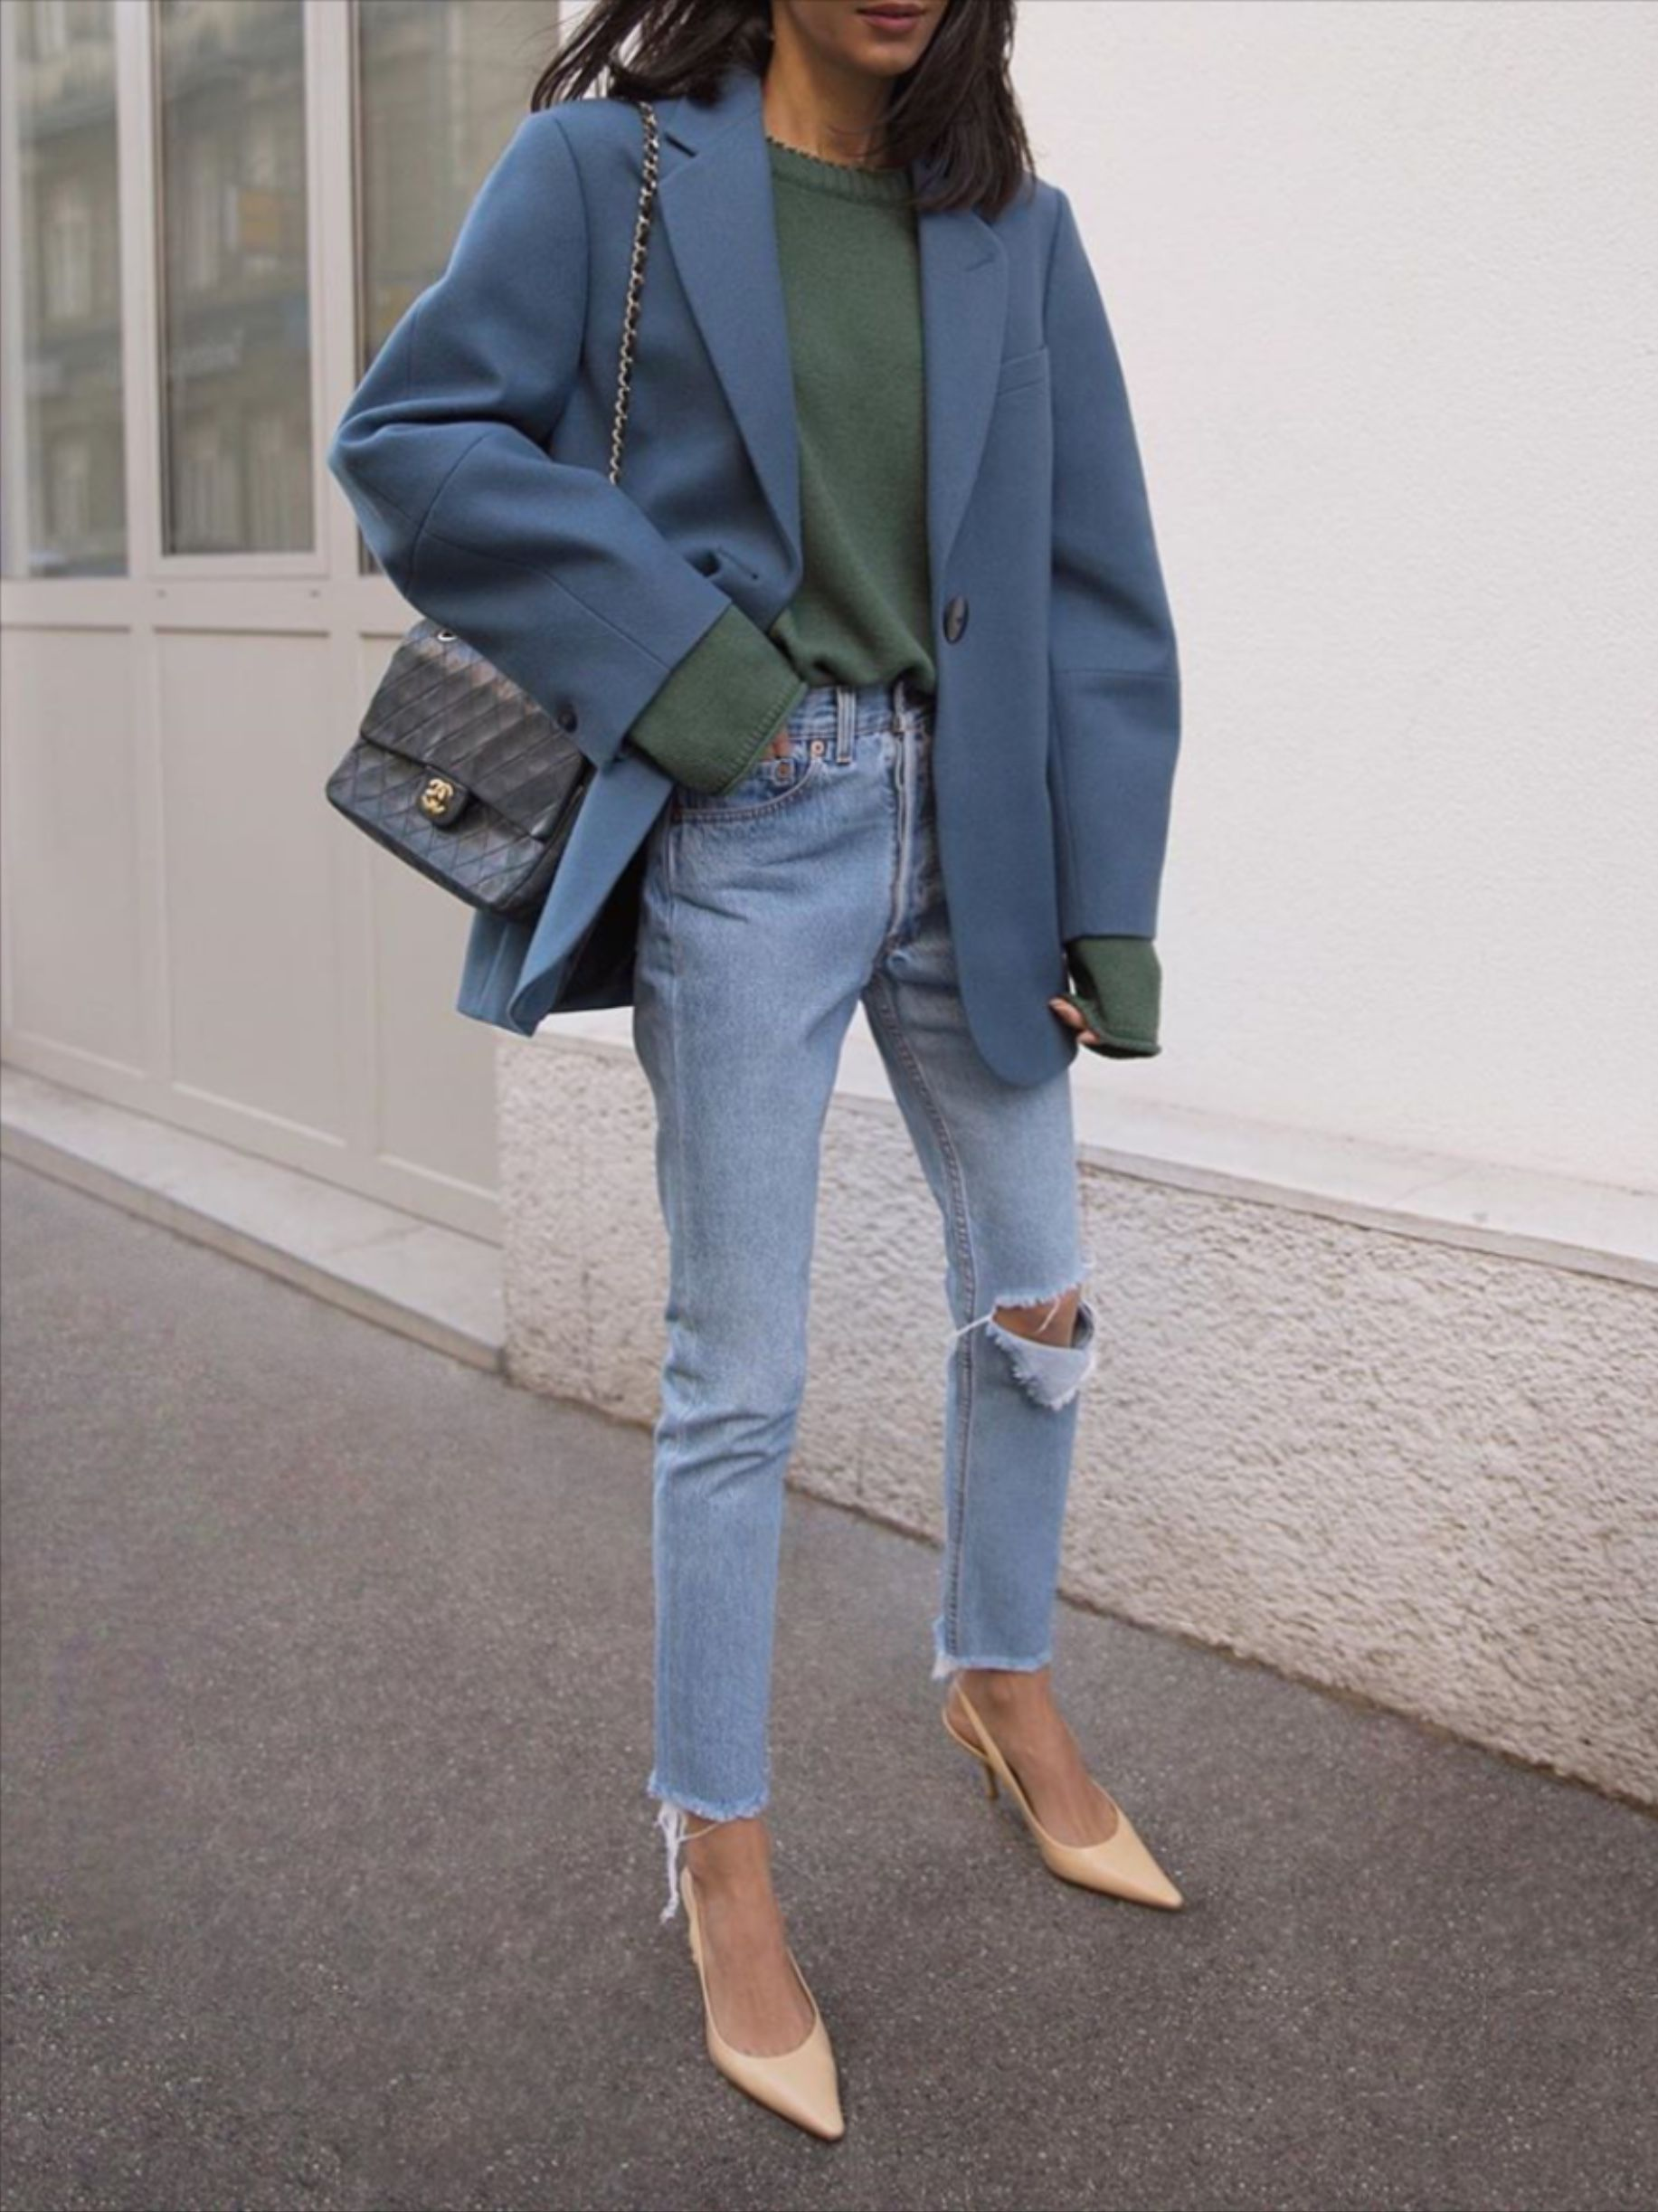 31 Cute Outfit Ideas To Try Out RN